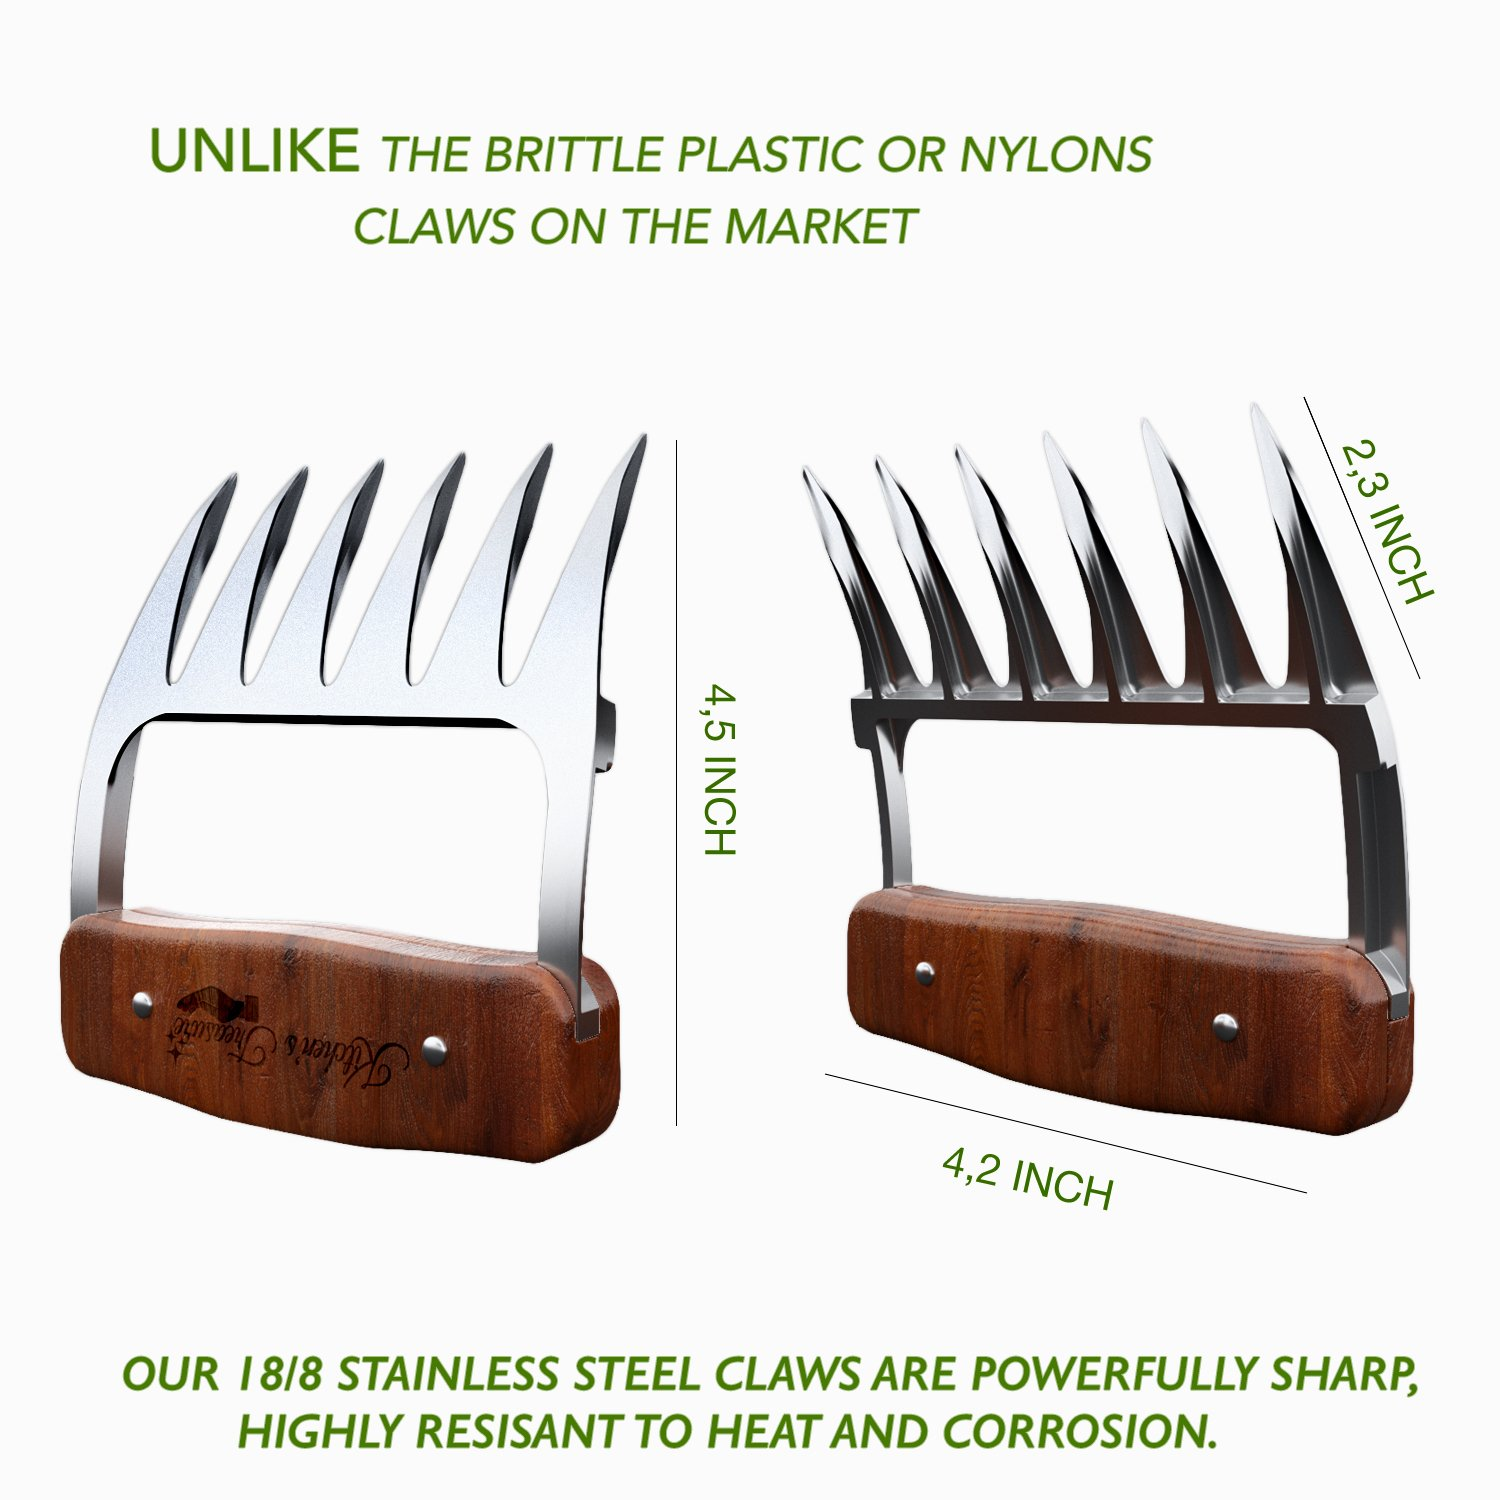 Metal meat claws - Stainless steel- BBQ chicken,Pork Pullers Paws with durable wooden handles - Meat Shredding Forks and Hooks for Lifting, Handling, Shred Roasts and Briskets (2PCS) Kitchen's treasure